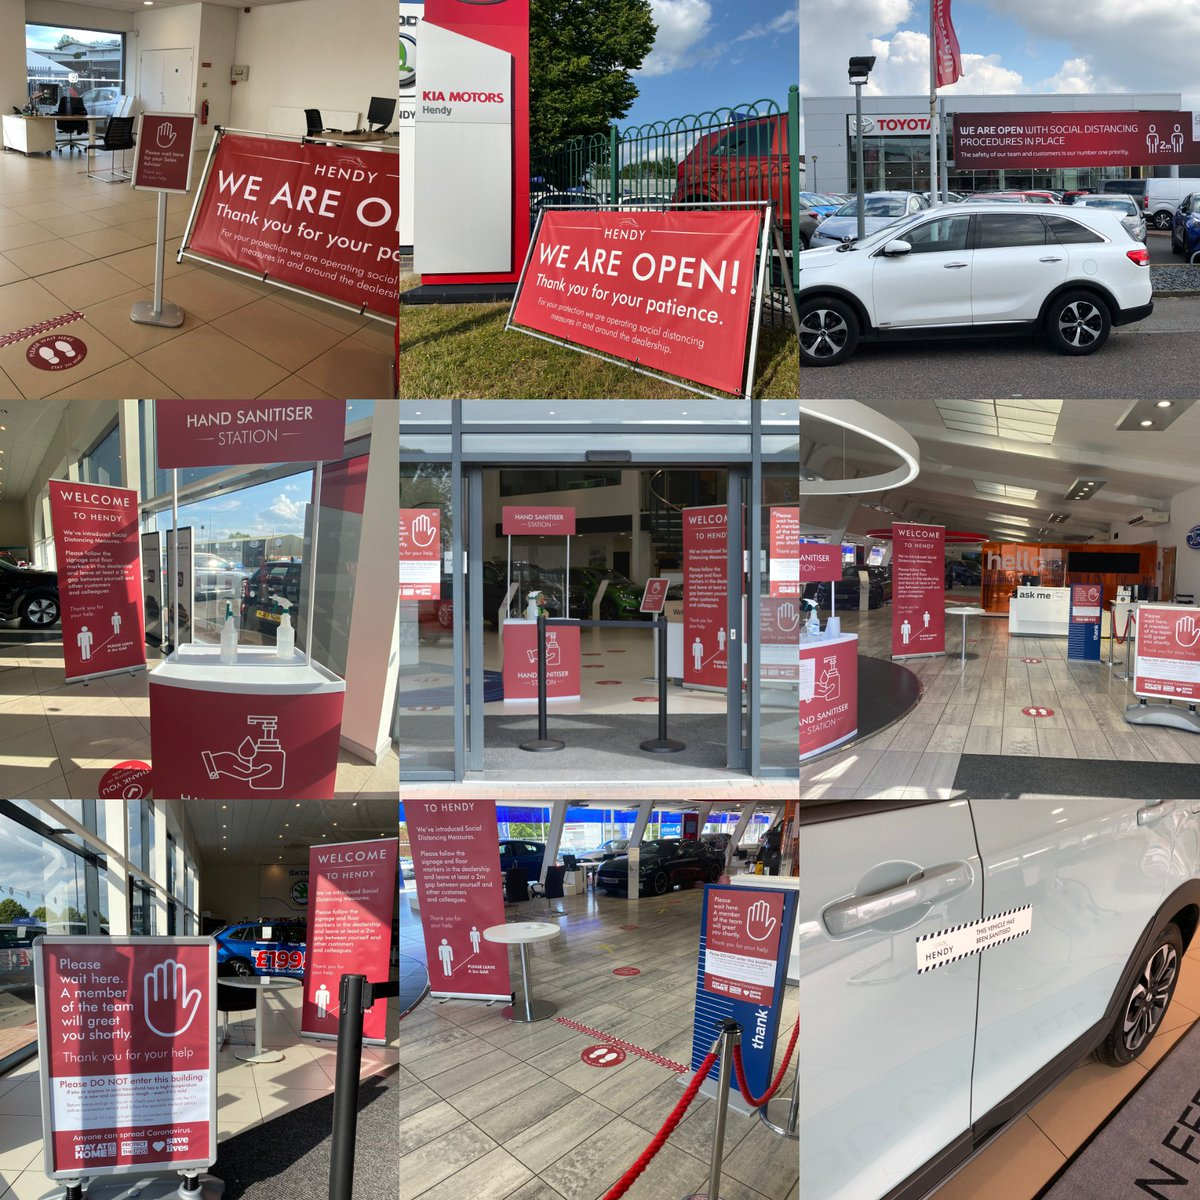 Ebay Motors Group Uk On Twitter Great To See How Hendygroup Have Implemented Clear Consistent Signage And Hand Sanitising Stations In Their Showrooms Taking Measures Like These Can All Help In Getting